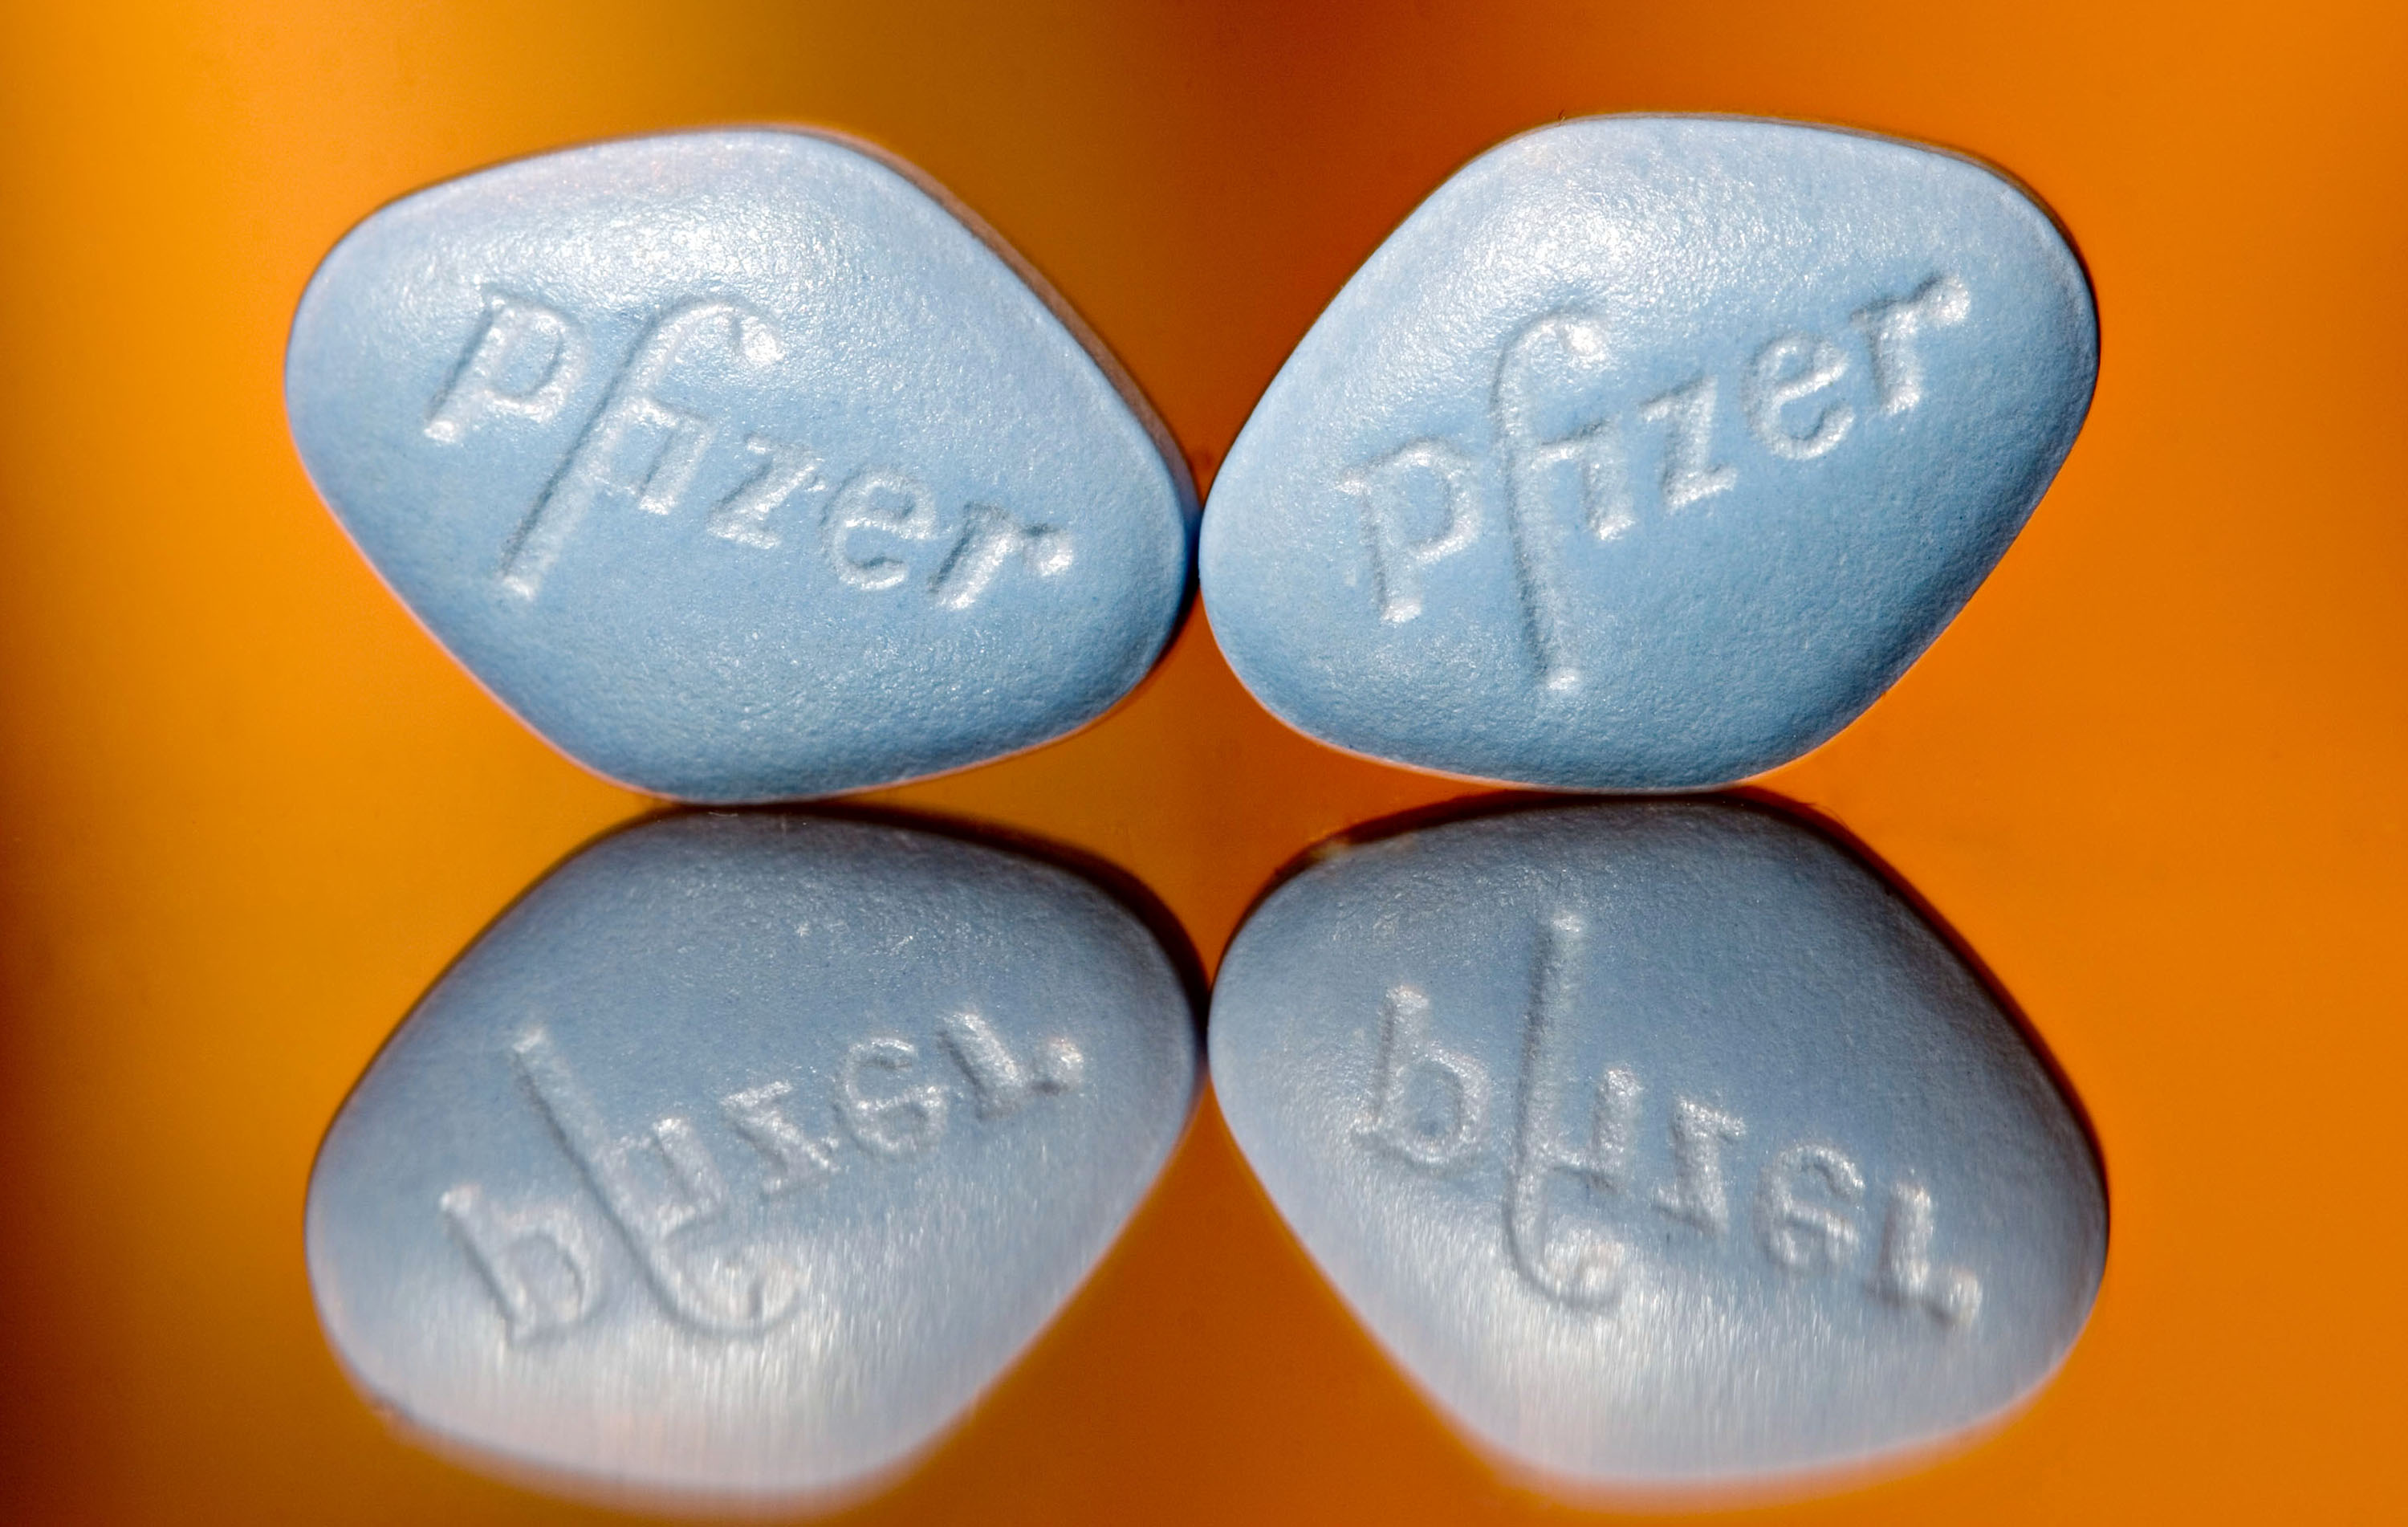 The erectile dysfunction drug has brought Pfizer billions.